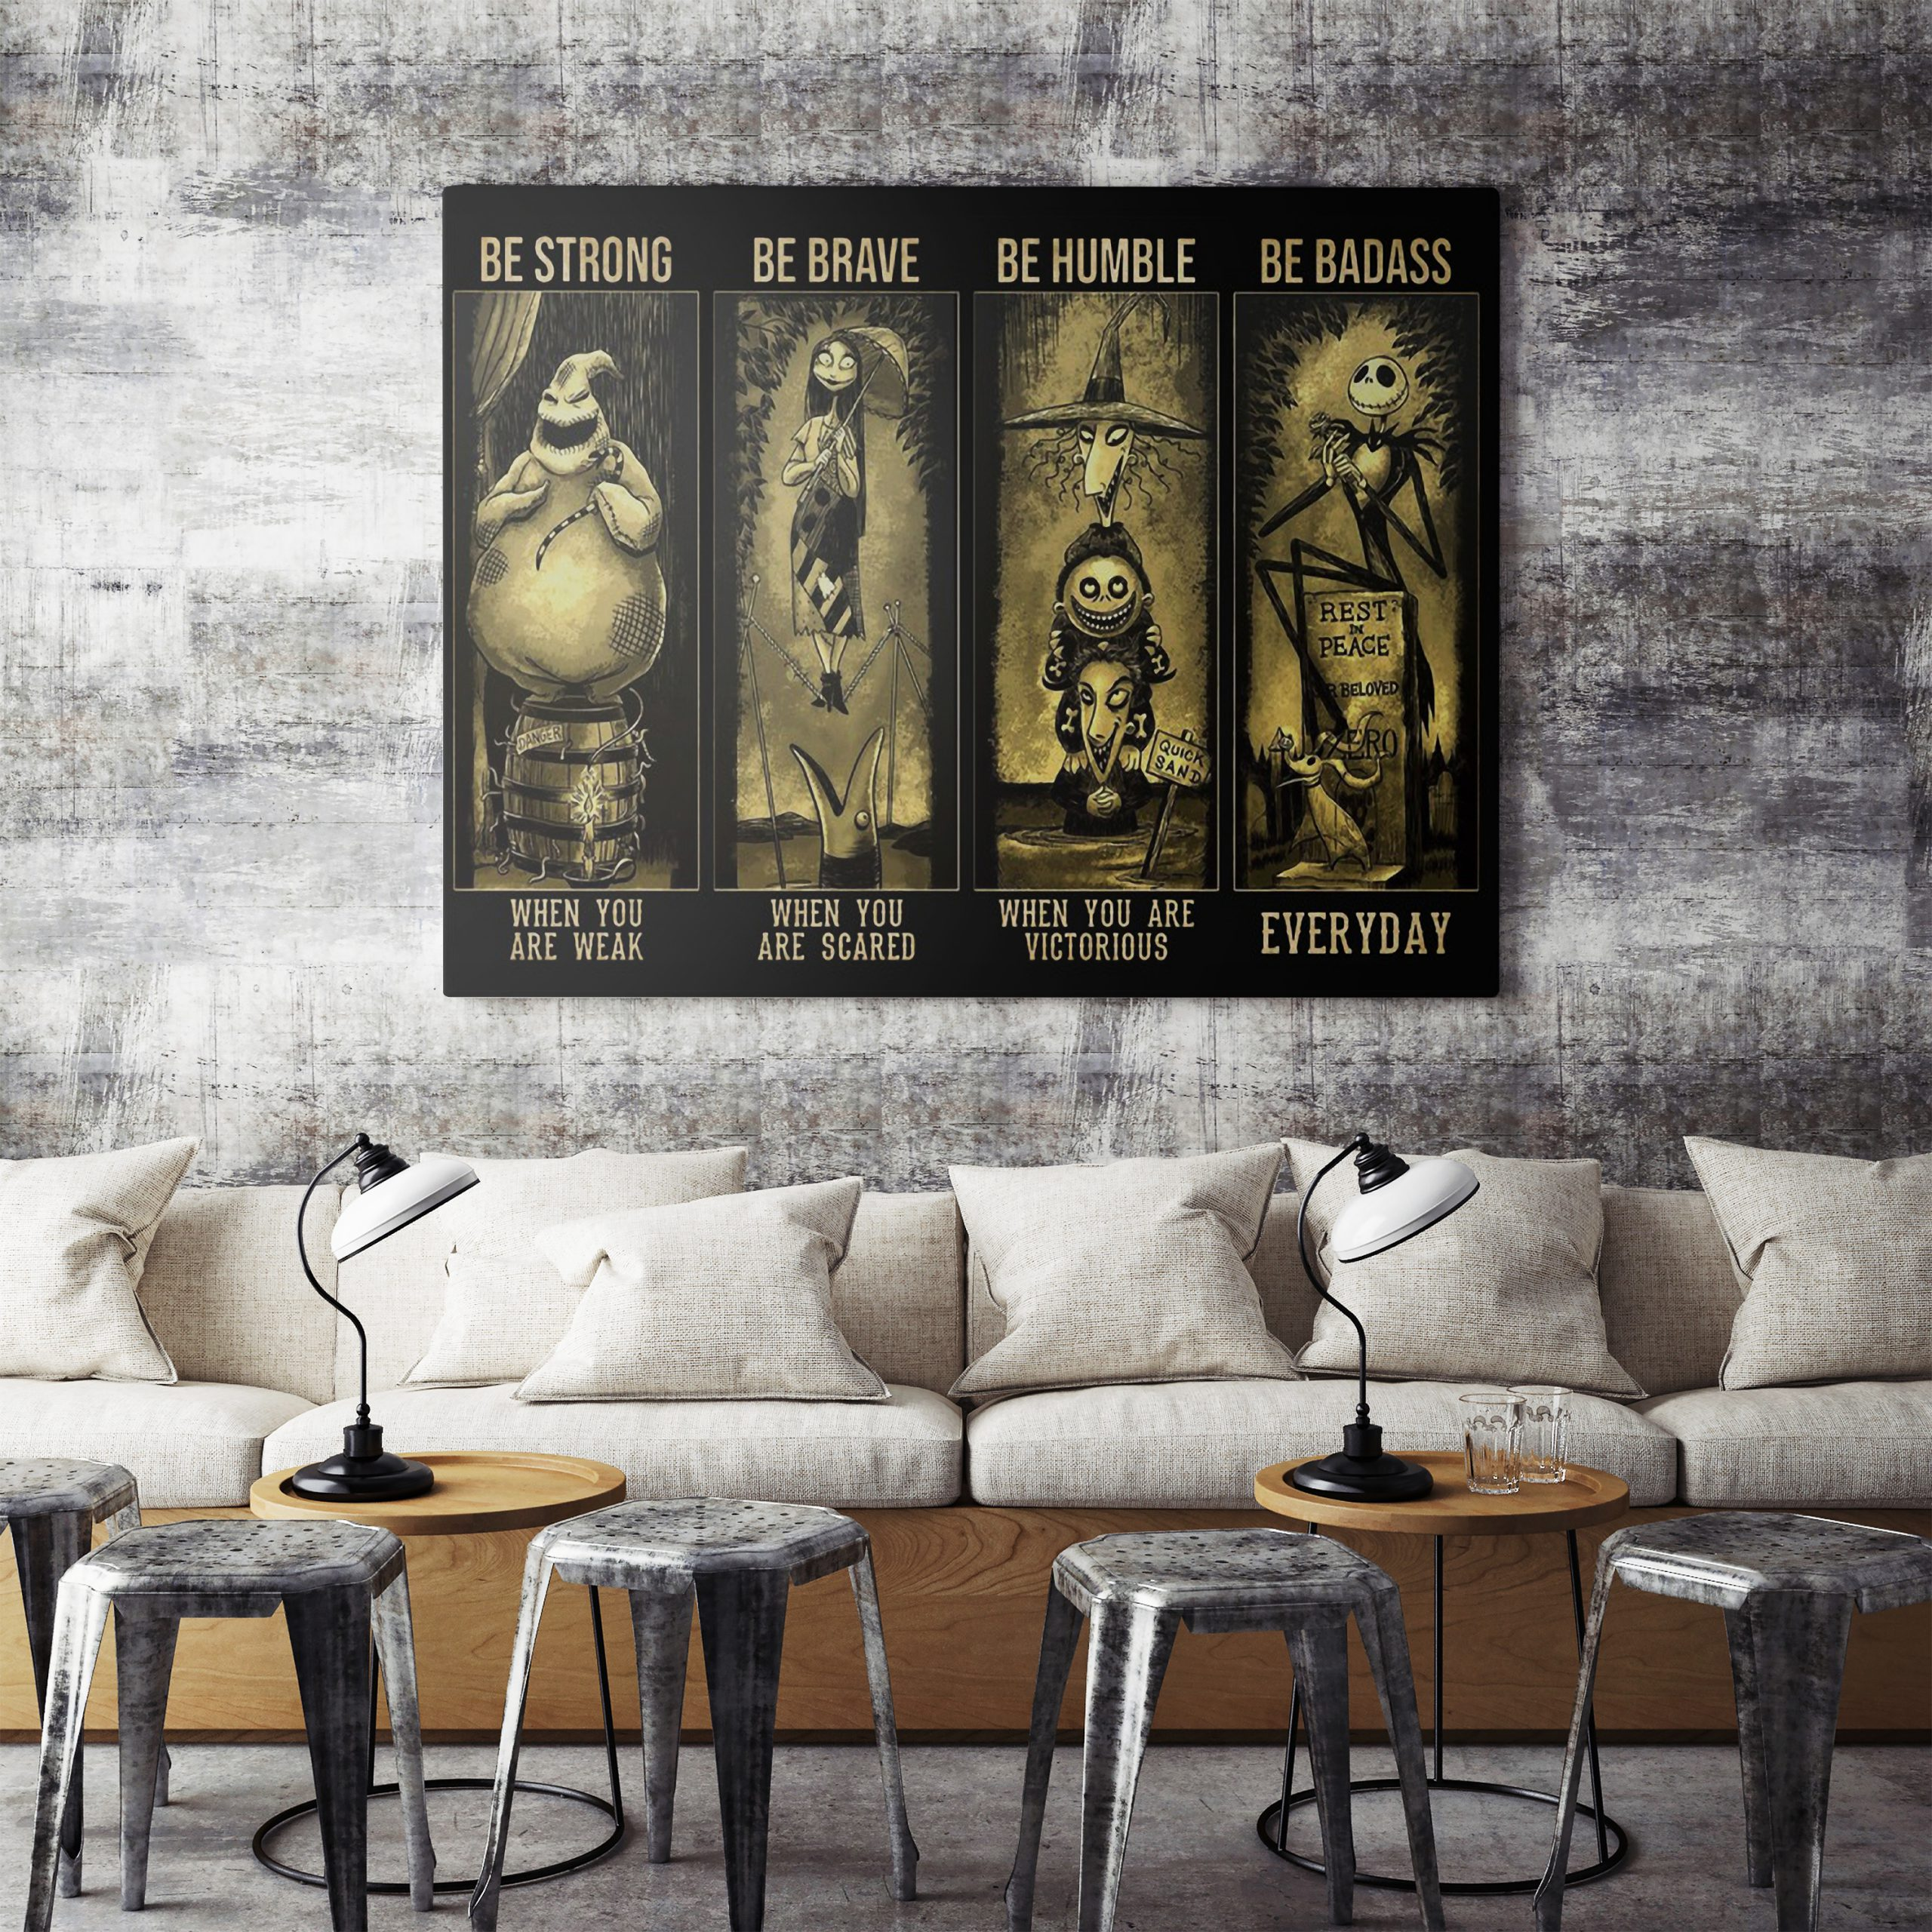 Disney Parks Haunted Mansion Stretch Room Nightmare Before Christmas Poster